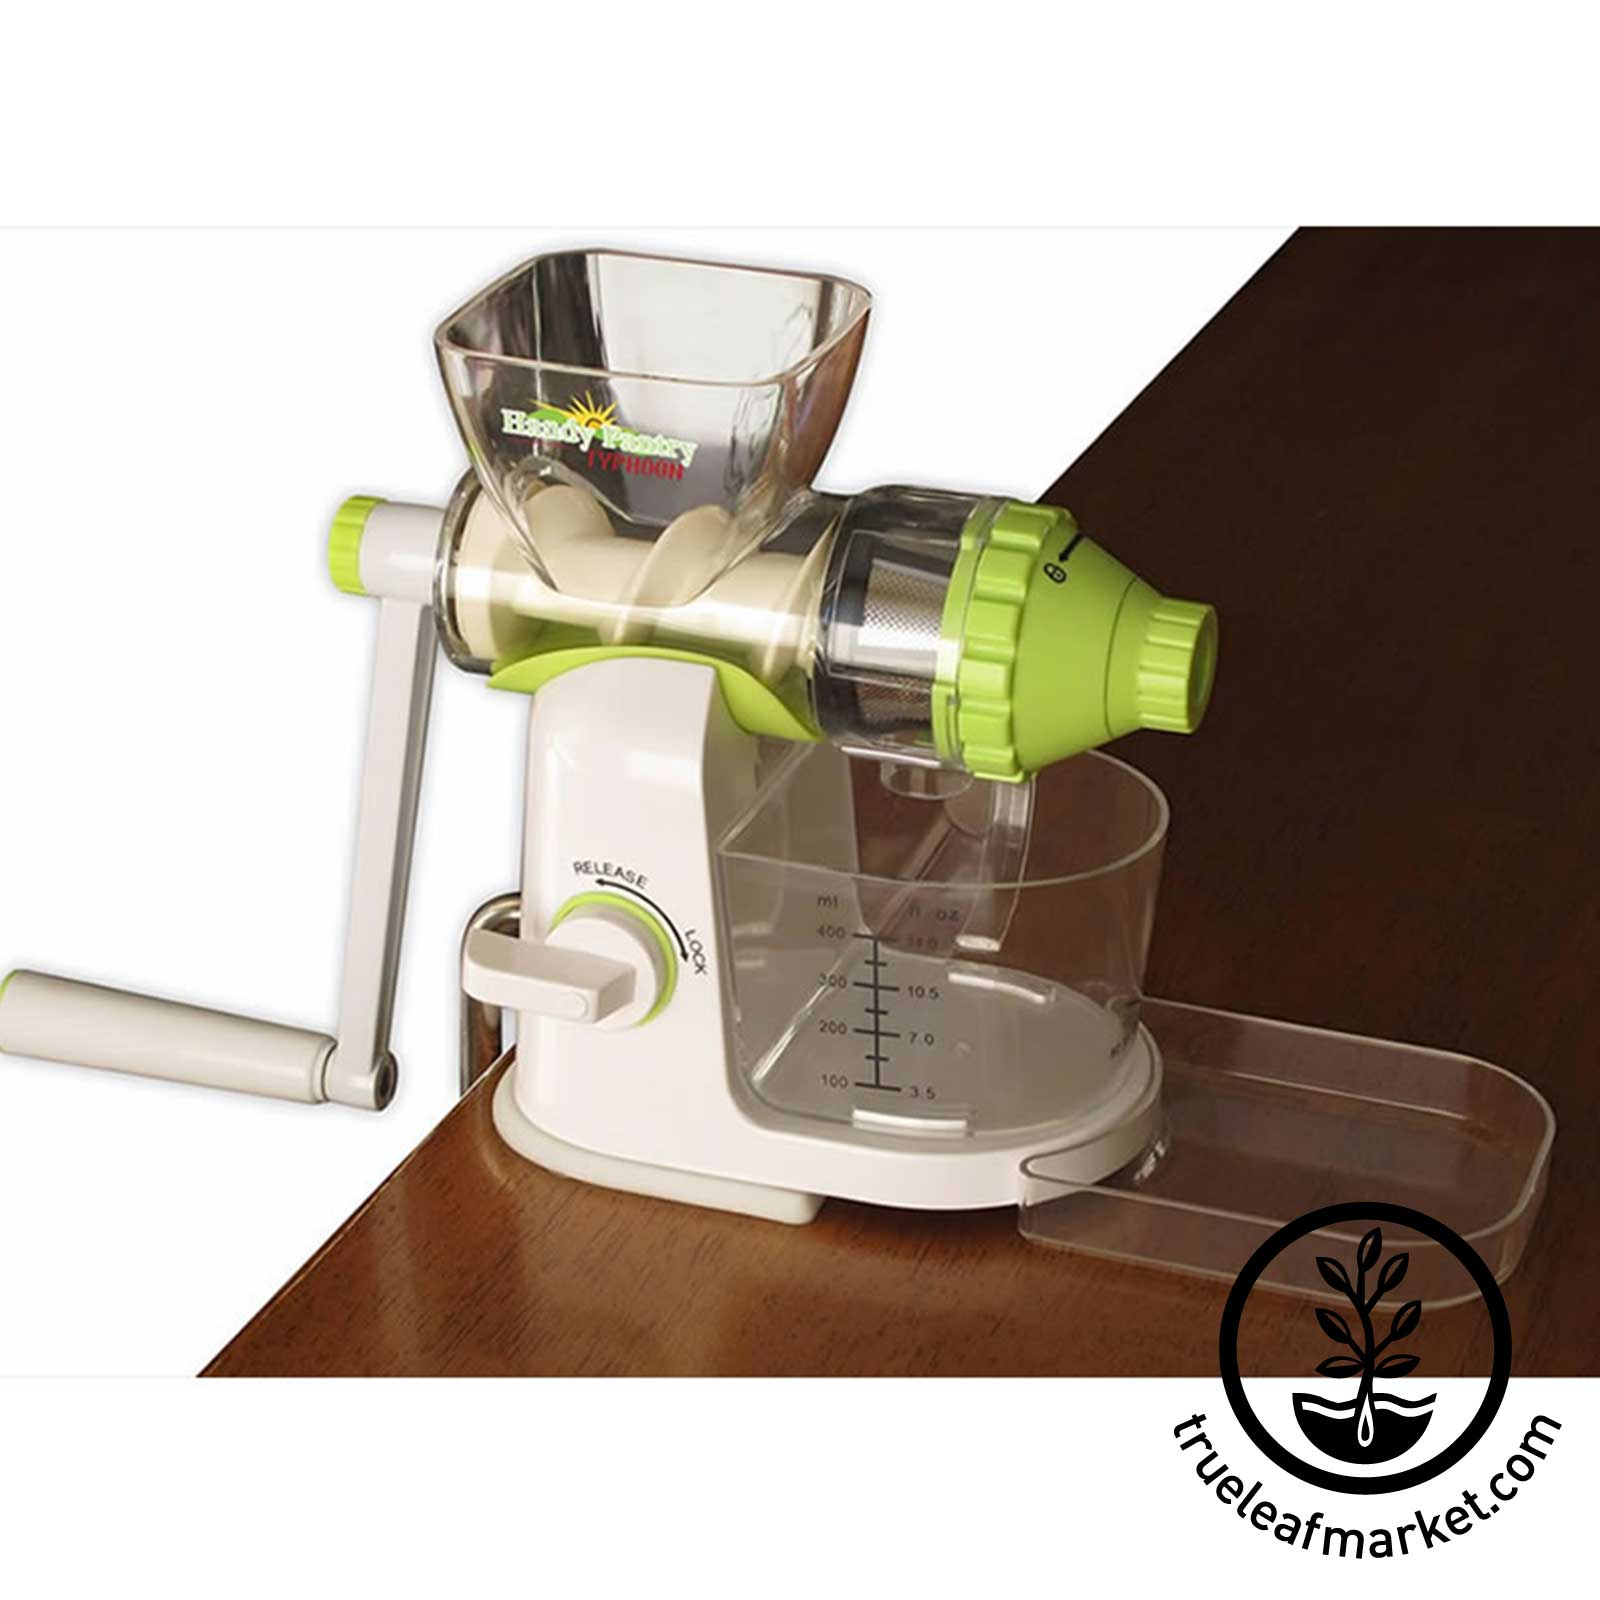 Typhoon Wheatgrass Juicer wheatgrass juicer, manual juicer, hand crank juicer